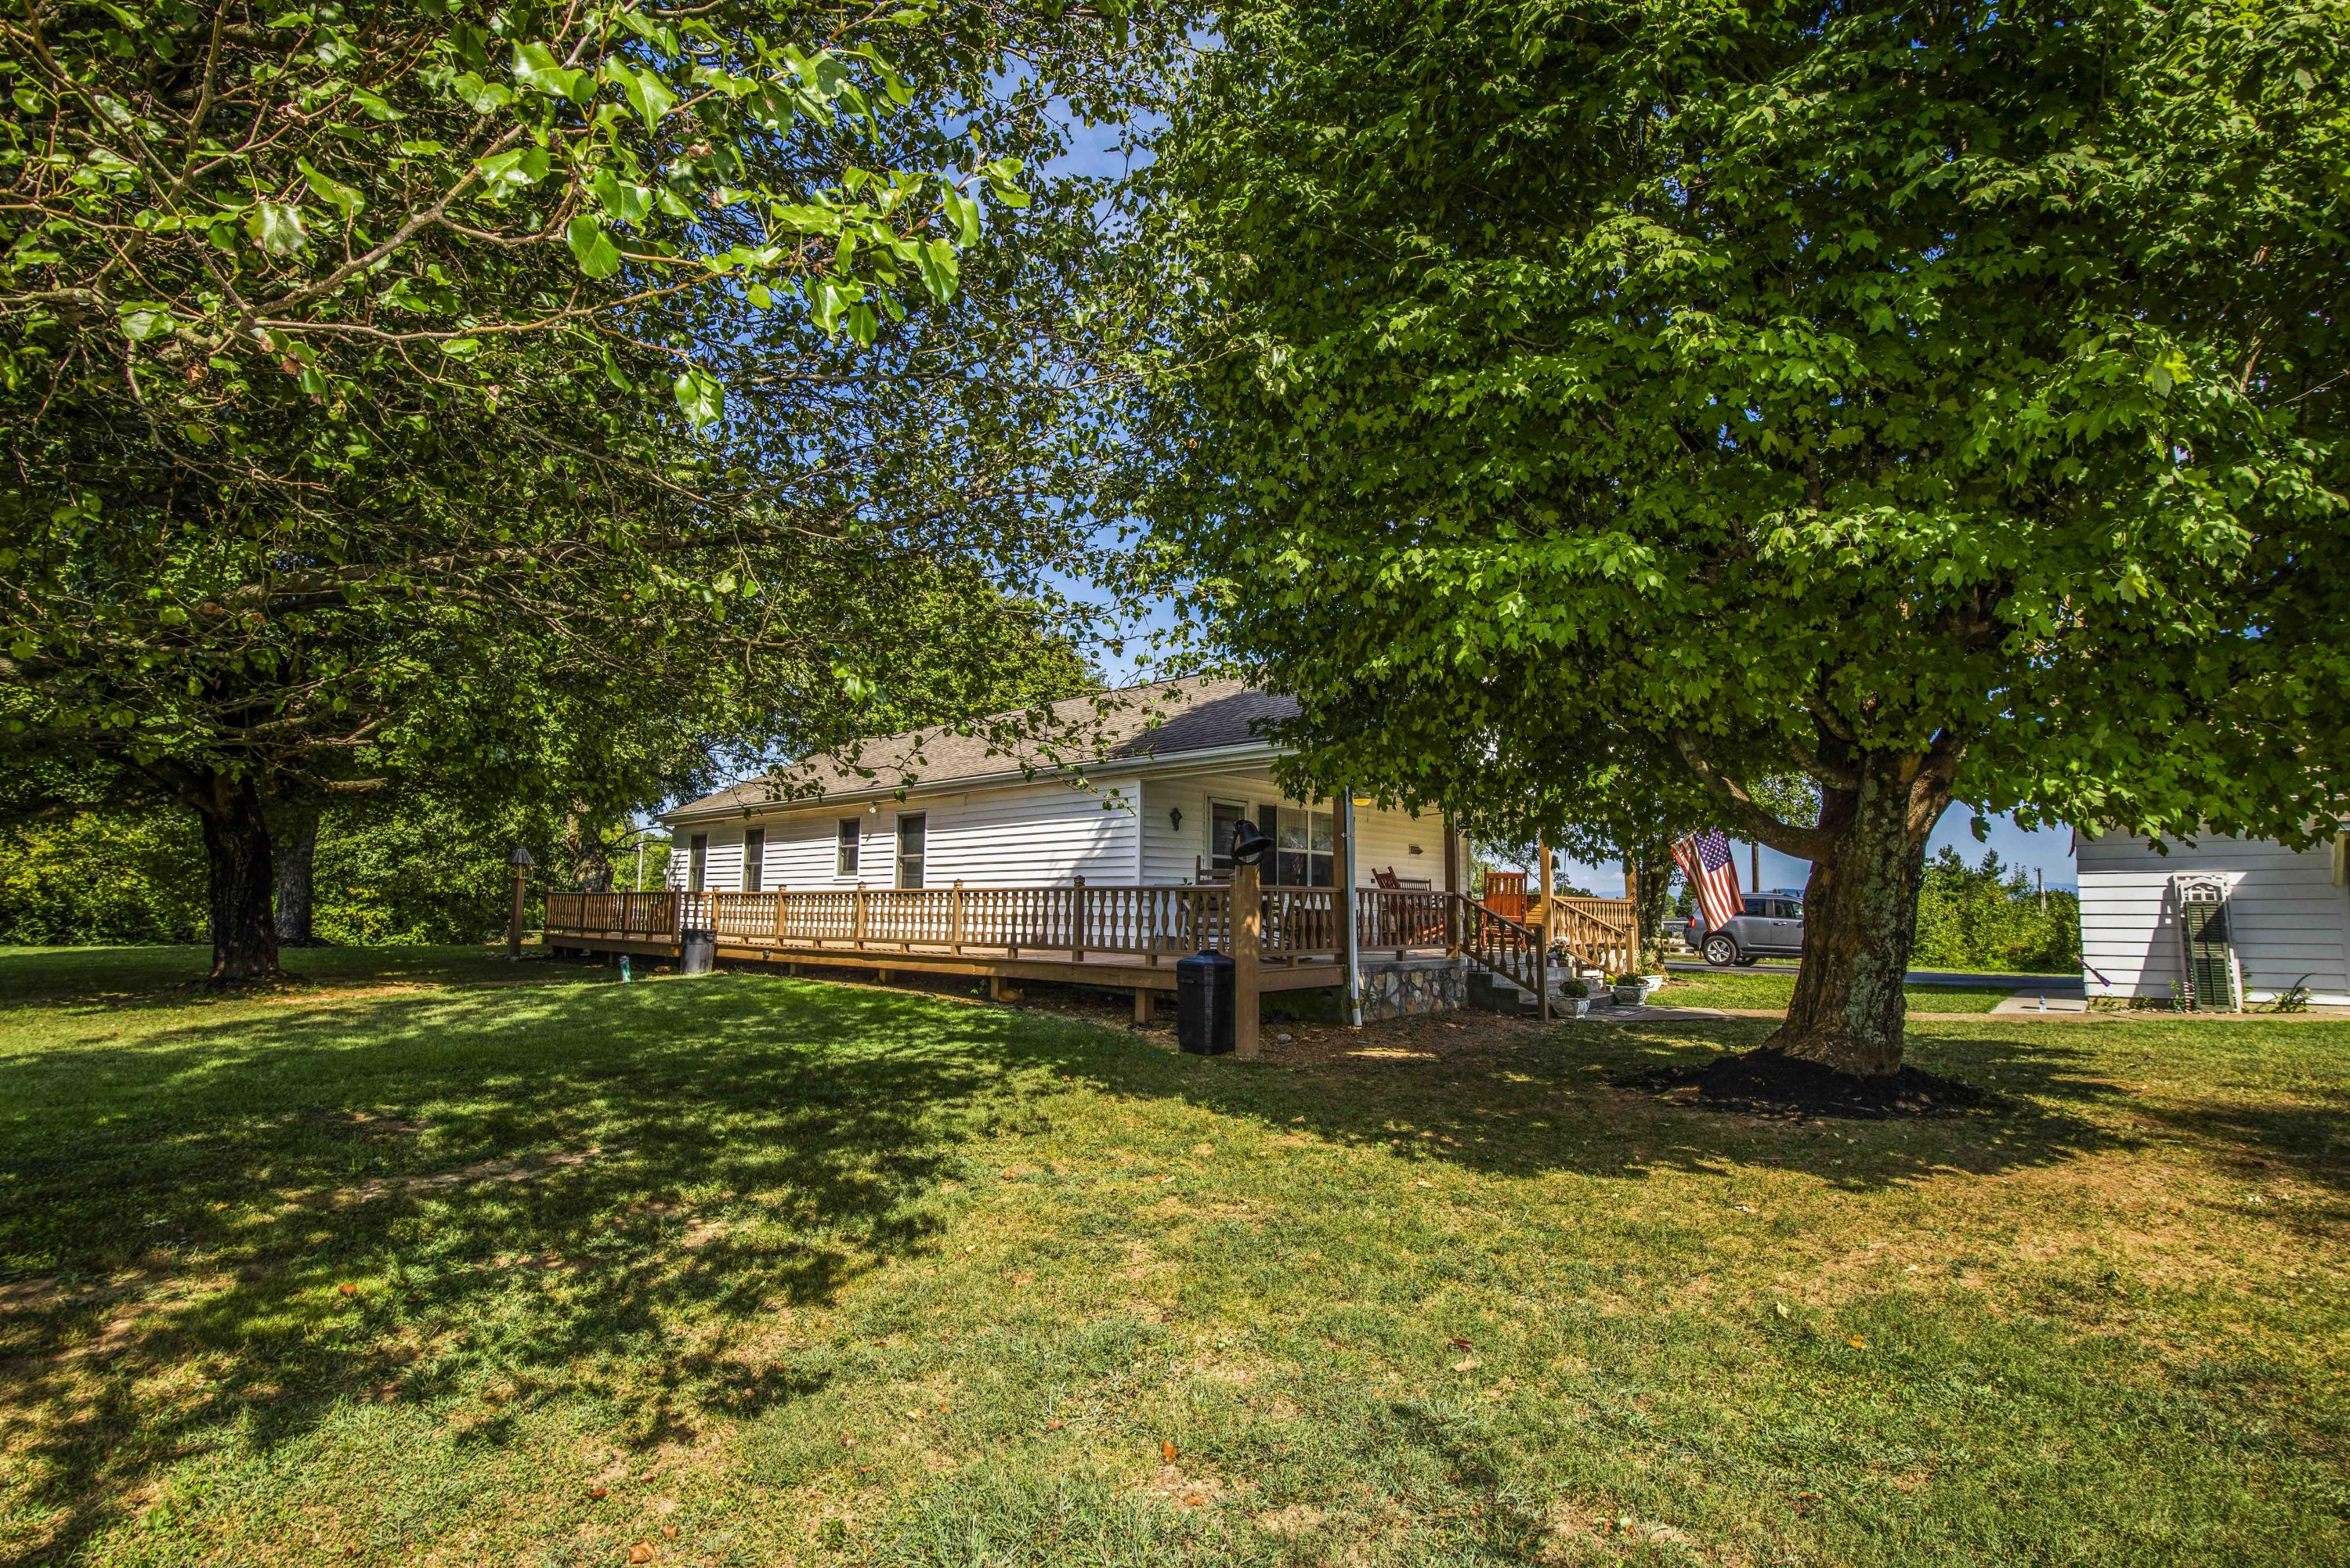 1533 Middlesettlements Rd, Maryville, Tennessee 37801, 2 Bedrooms Bedrooms, ,2 BathroomsBathrooms,Single Family,For Sale,Middlesettlements,1093873